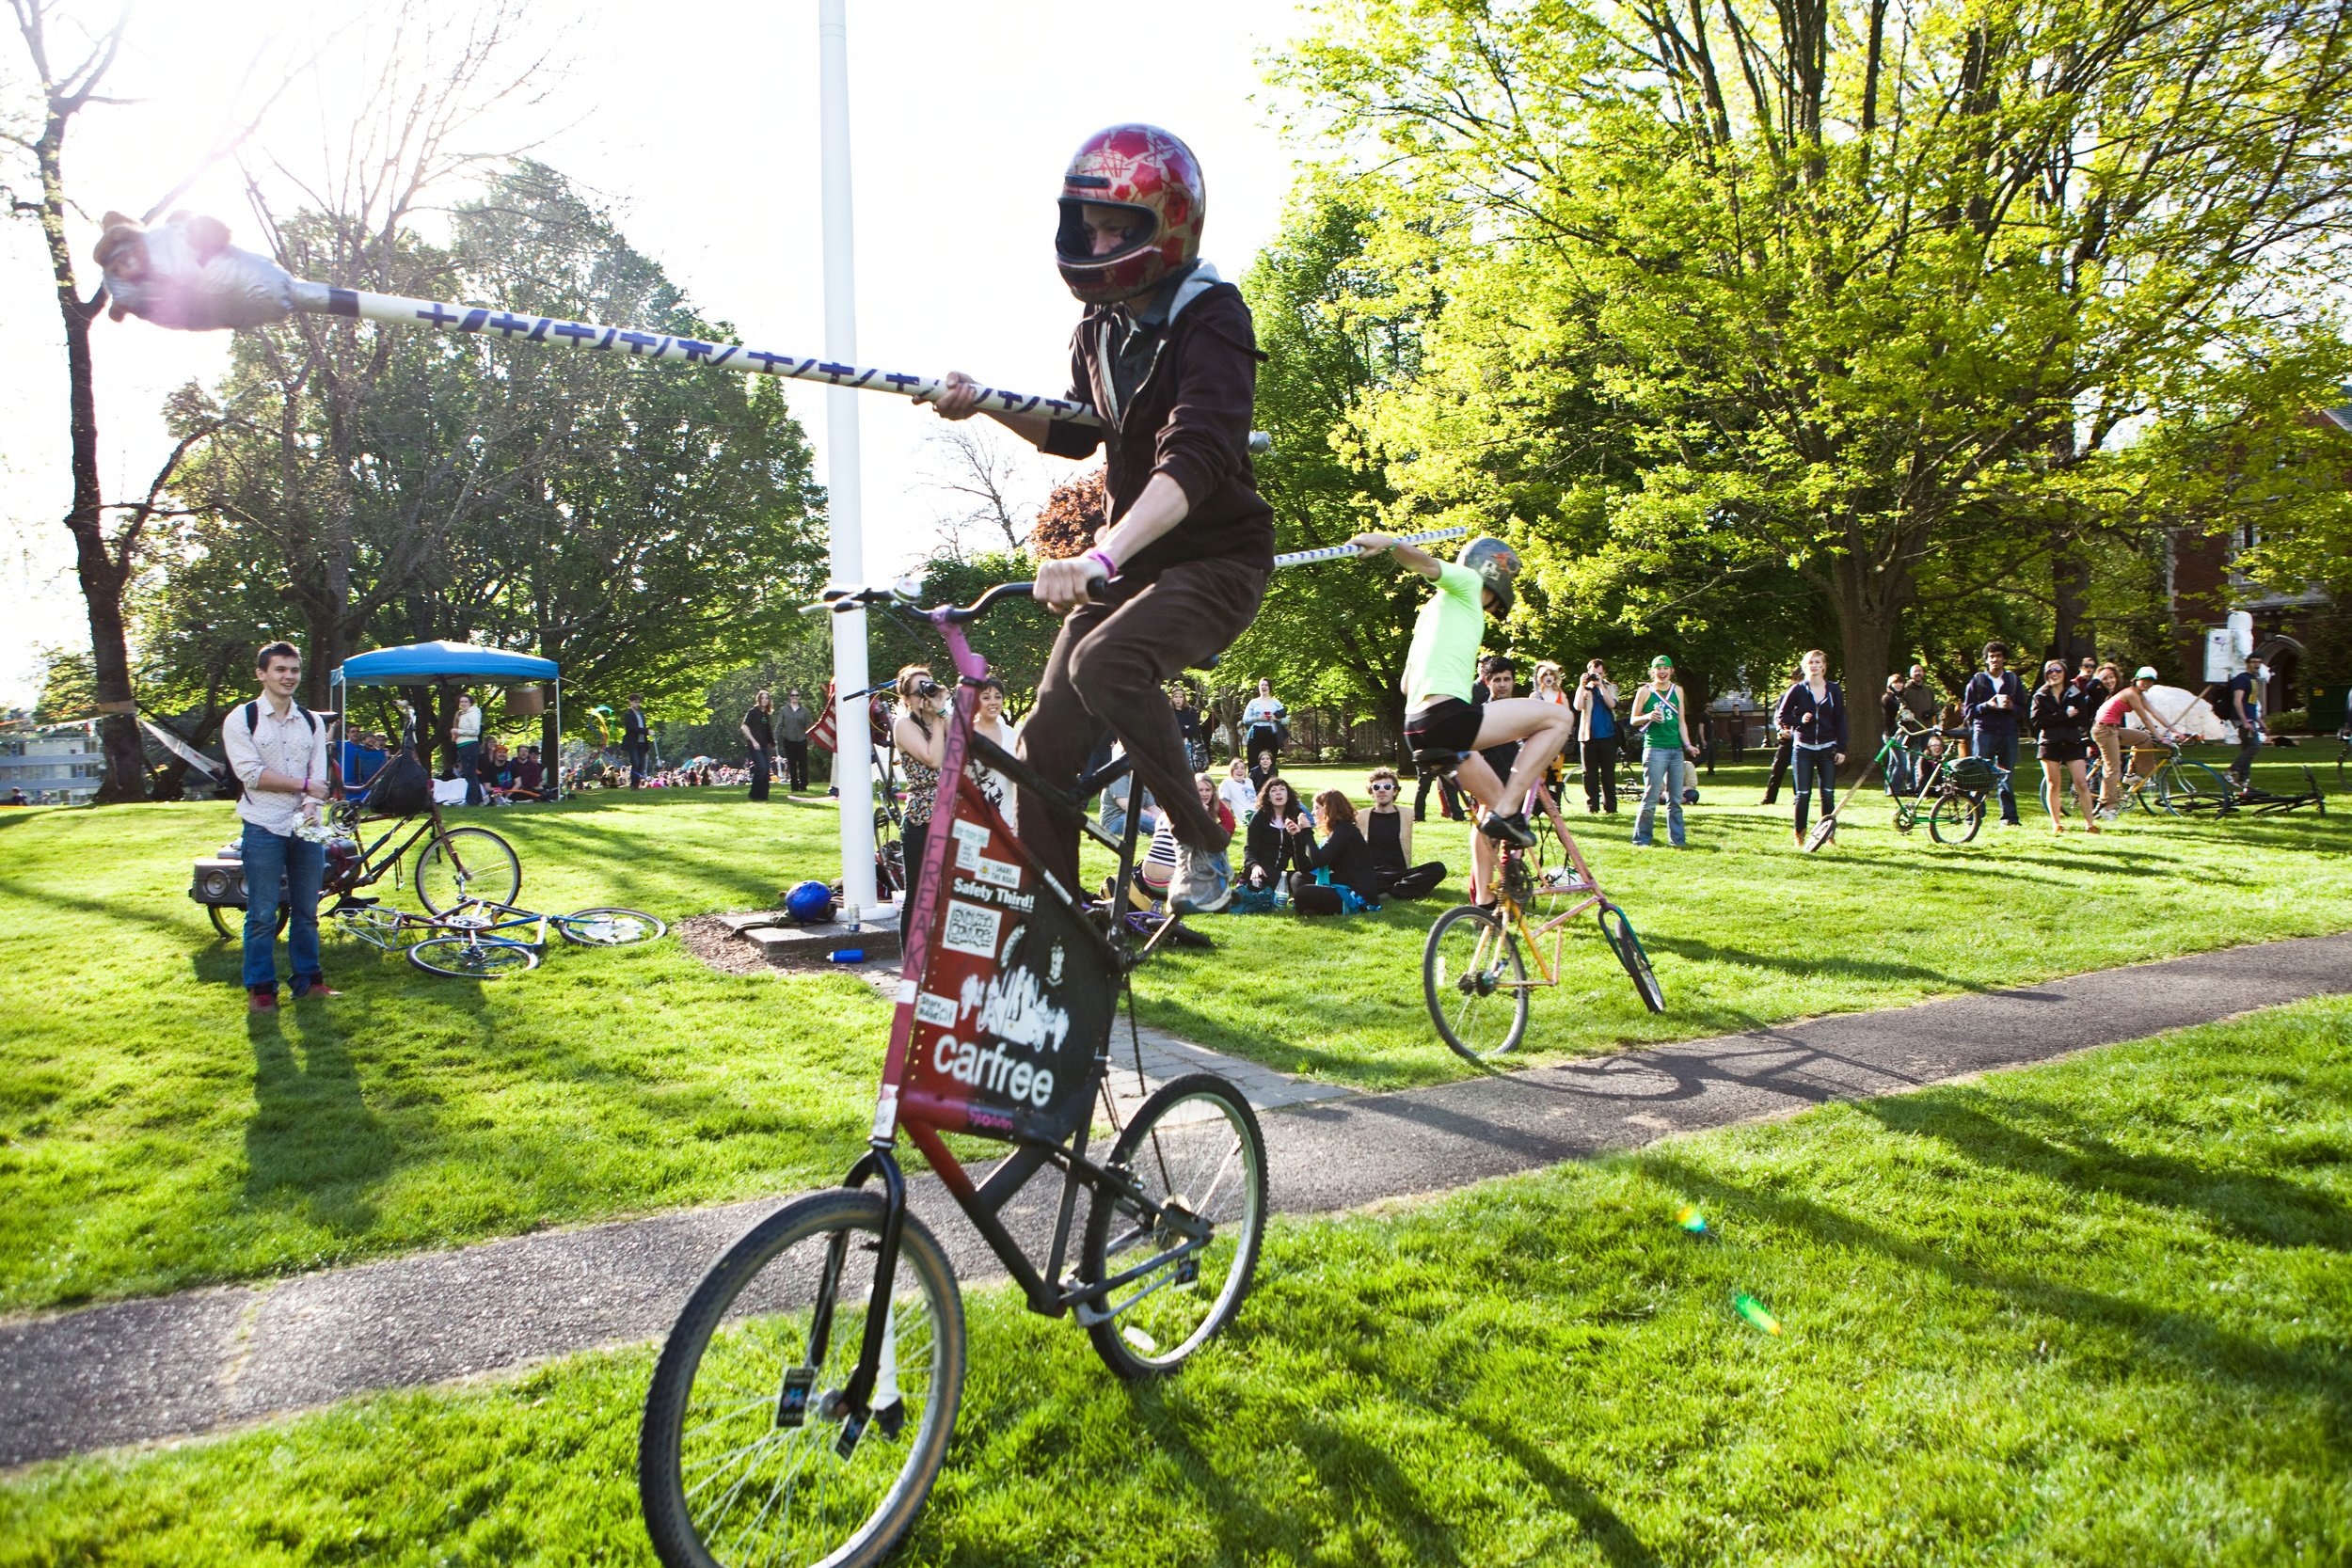 Student bike jousting during the 2010 Renn Fayre. Photo courtesy of Special Collections, Eric V. Hauser Memorial Library, Reed College.